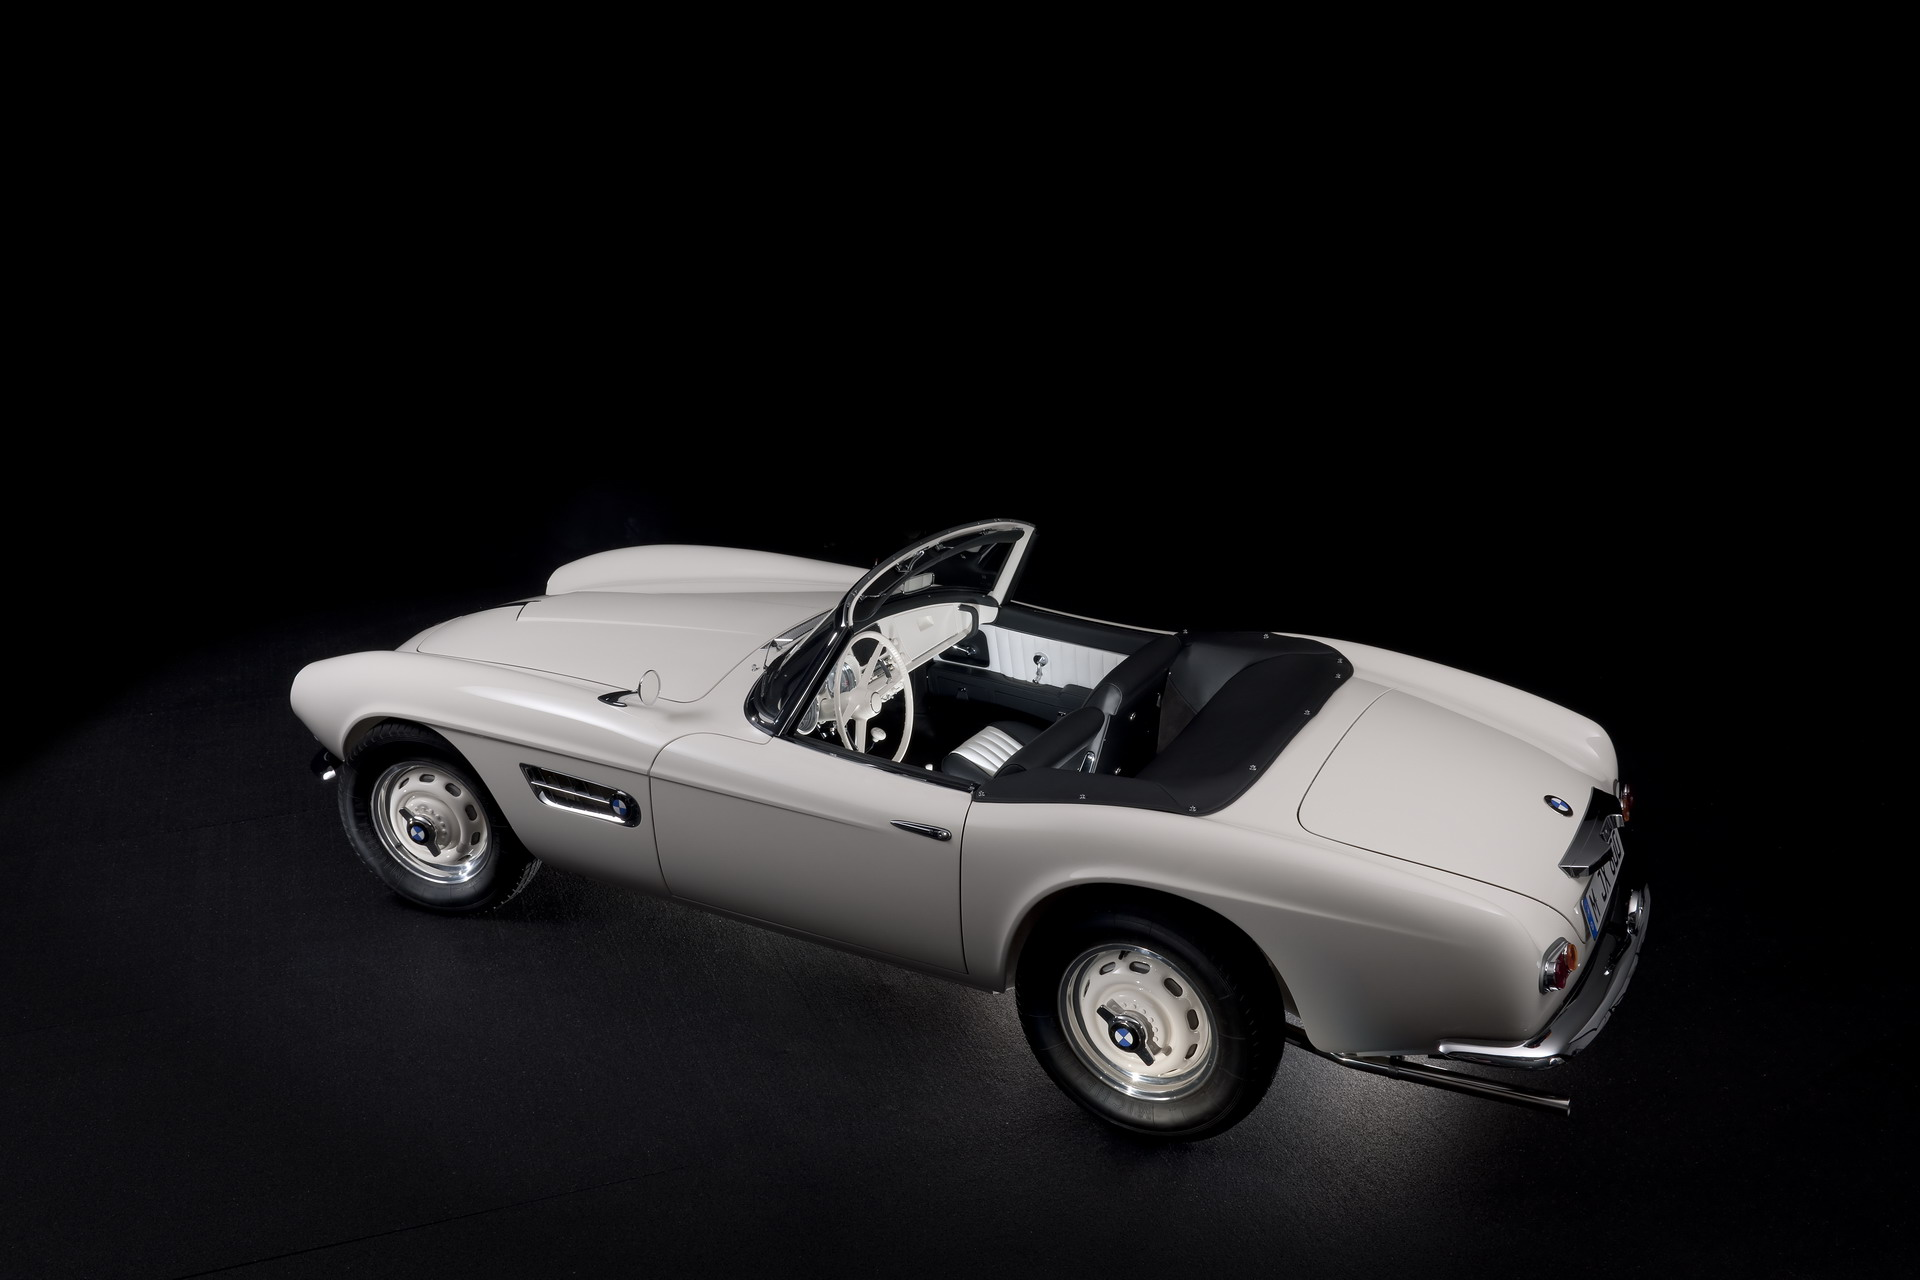 The restoration process of the BMW 507 of Elvis Presley 30